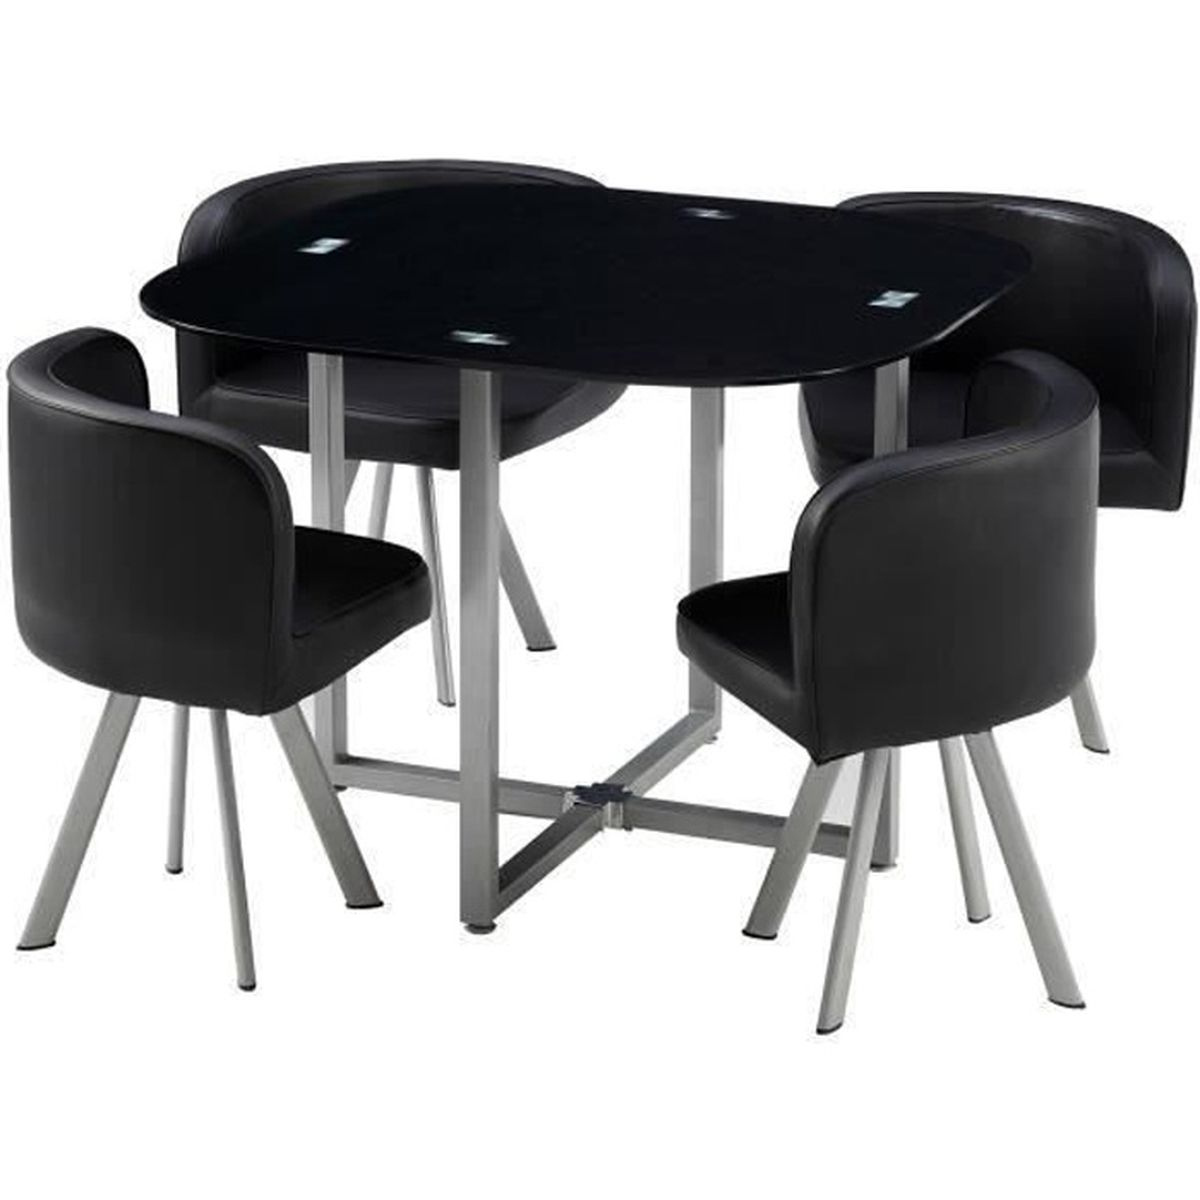 table avec chaise encastrable achat vente pas cher. Black Bedroom Furniture Sets. Home Design Ideas